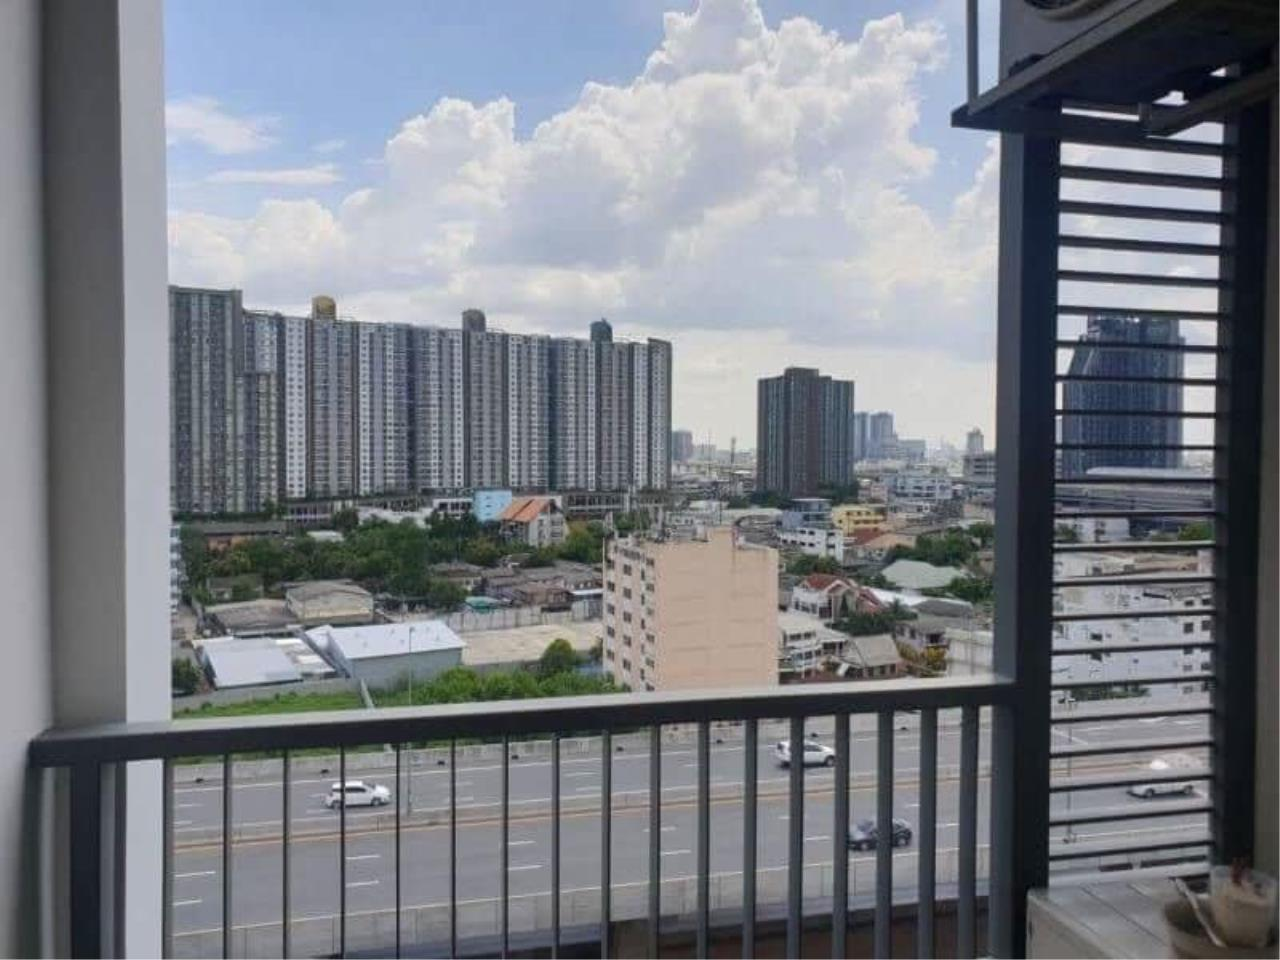 Agent Thawanrat Agency's Condo for rental Metro Sky Bangsue-Prachachuen Near BTS.Bang Son 1 bedroom,1 bathroom. size 36 sqm.Floor 12 th. fully furnished Ready to move in 8